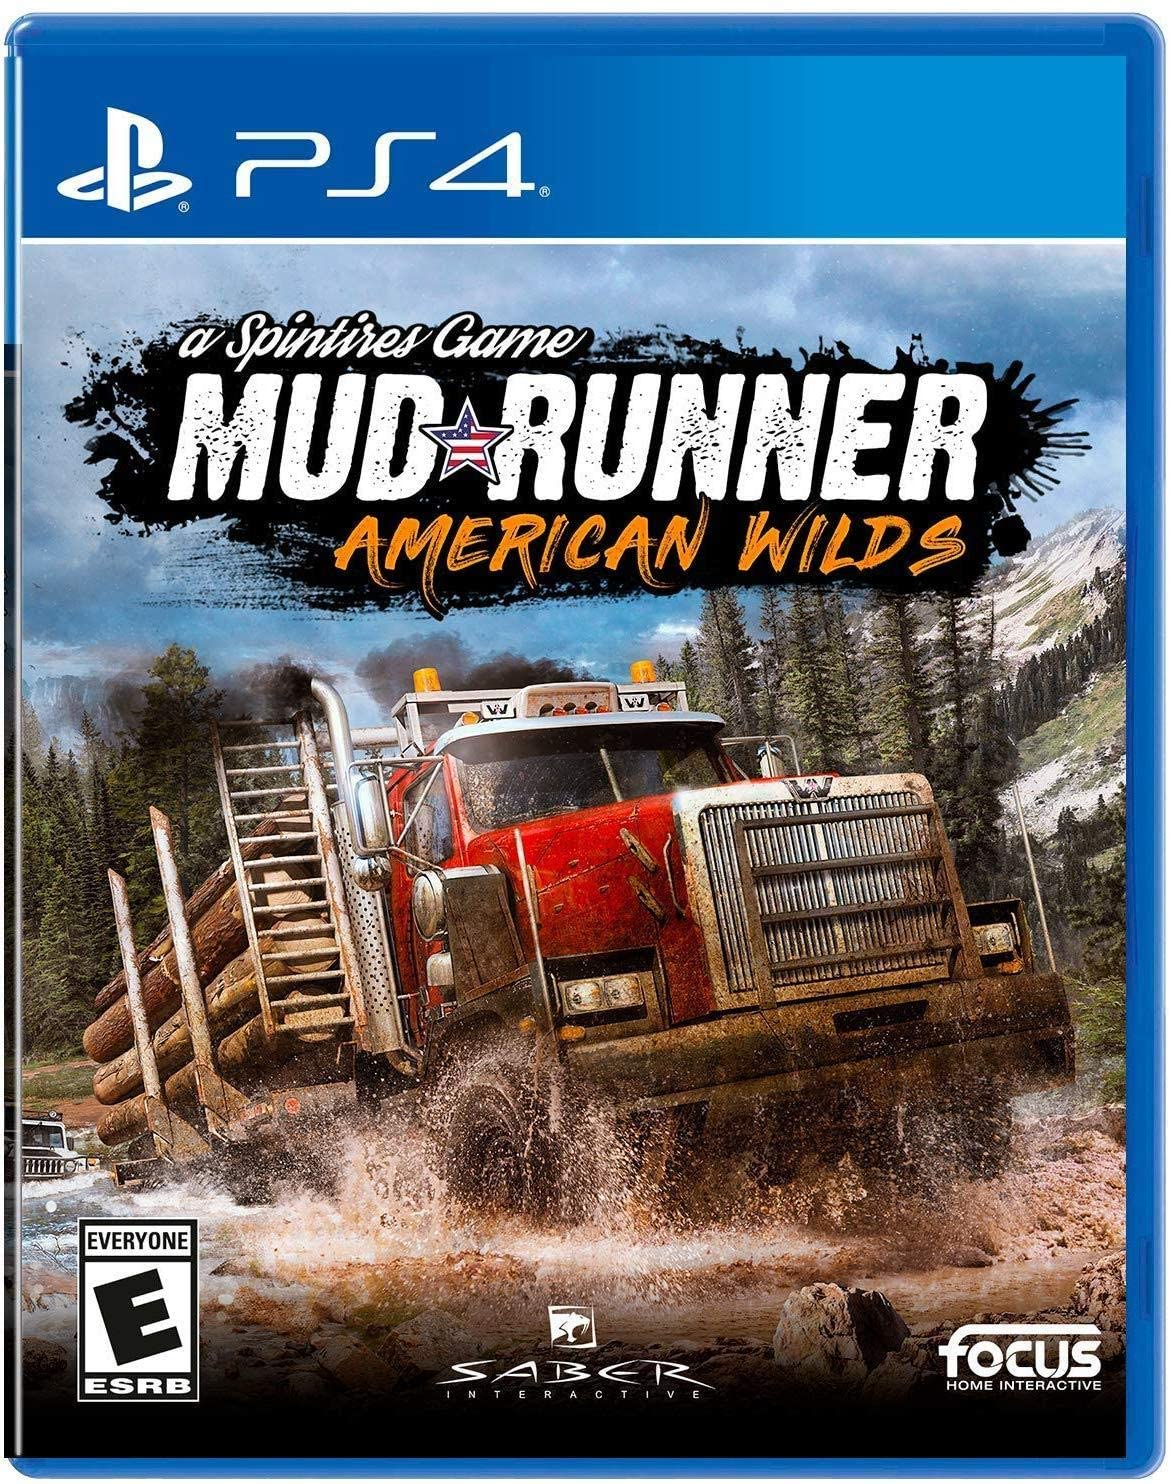 Mudrunner: American Wilds for PS4 and Xbox One